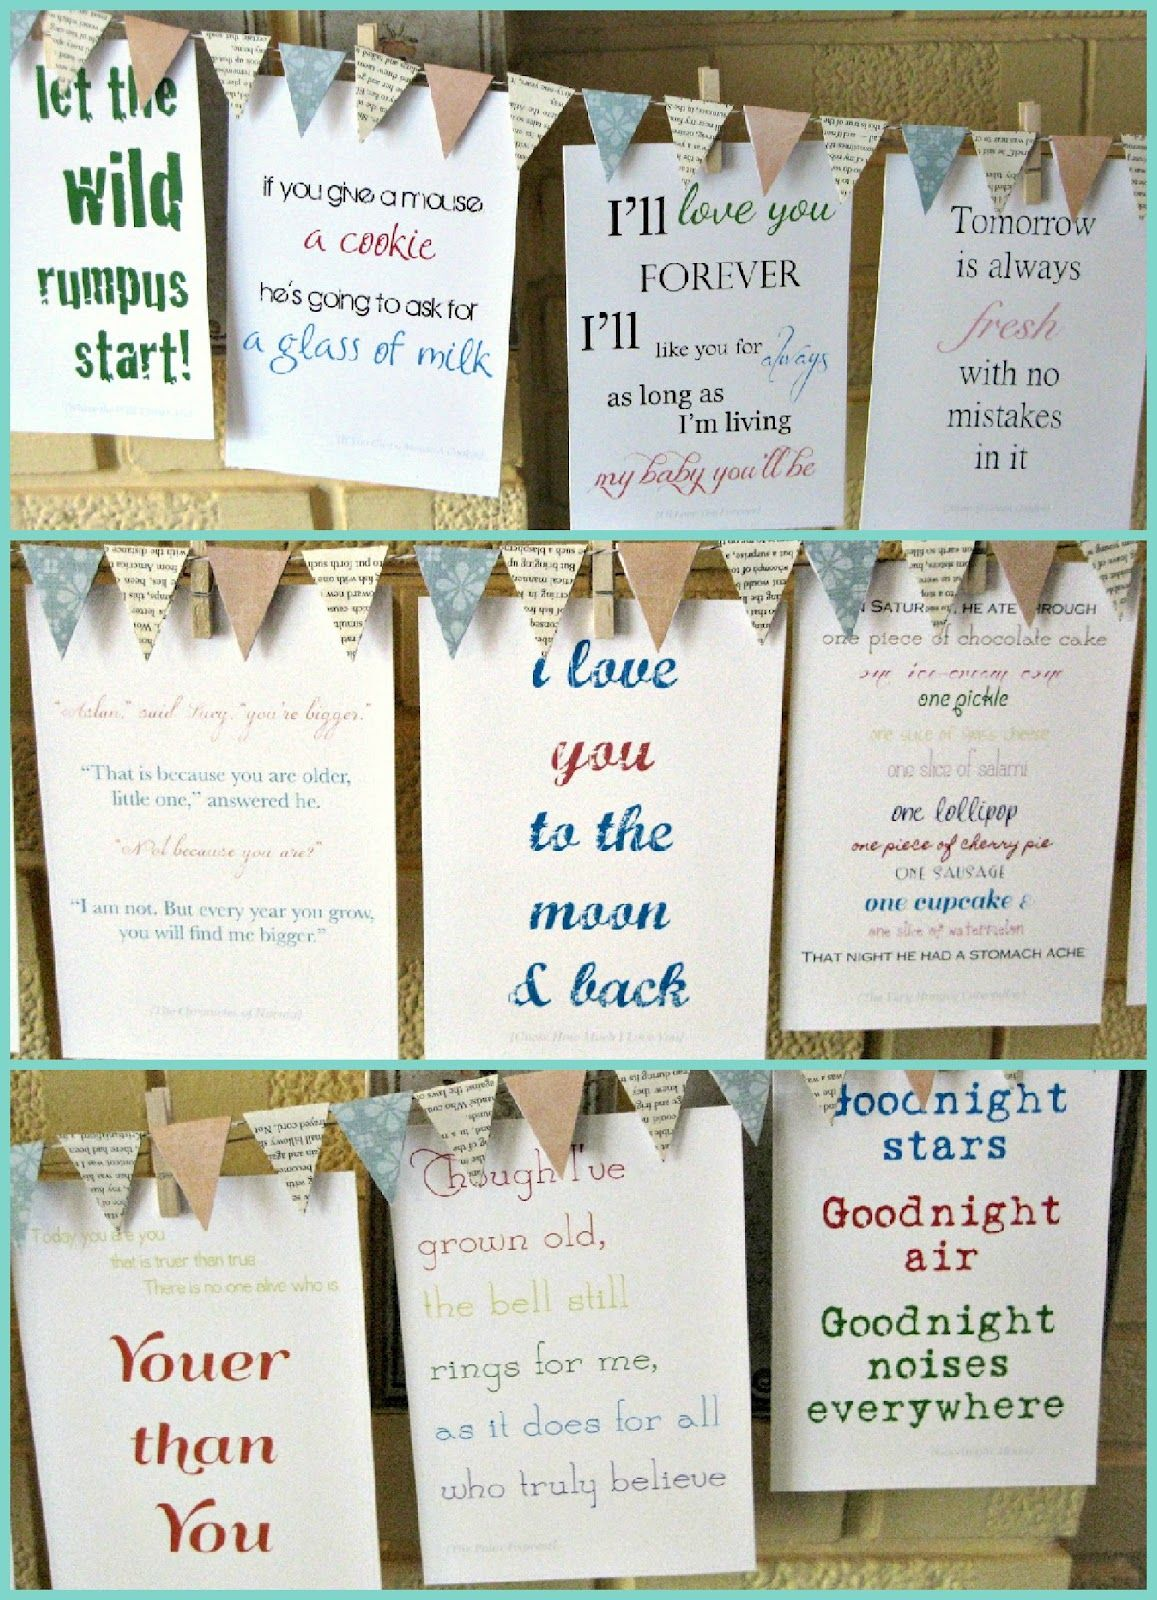 Quotes To Write In Books For Baby: Children's Books Quotes: Can Make A Game To Have Guests